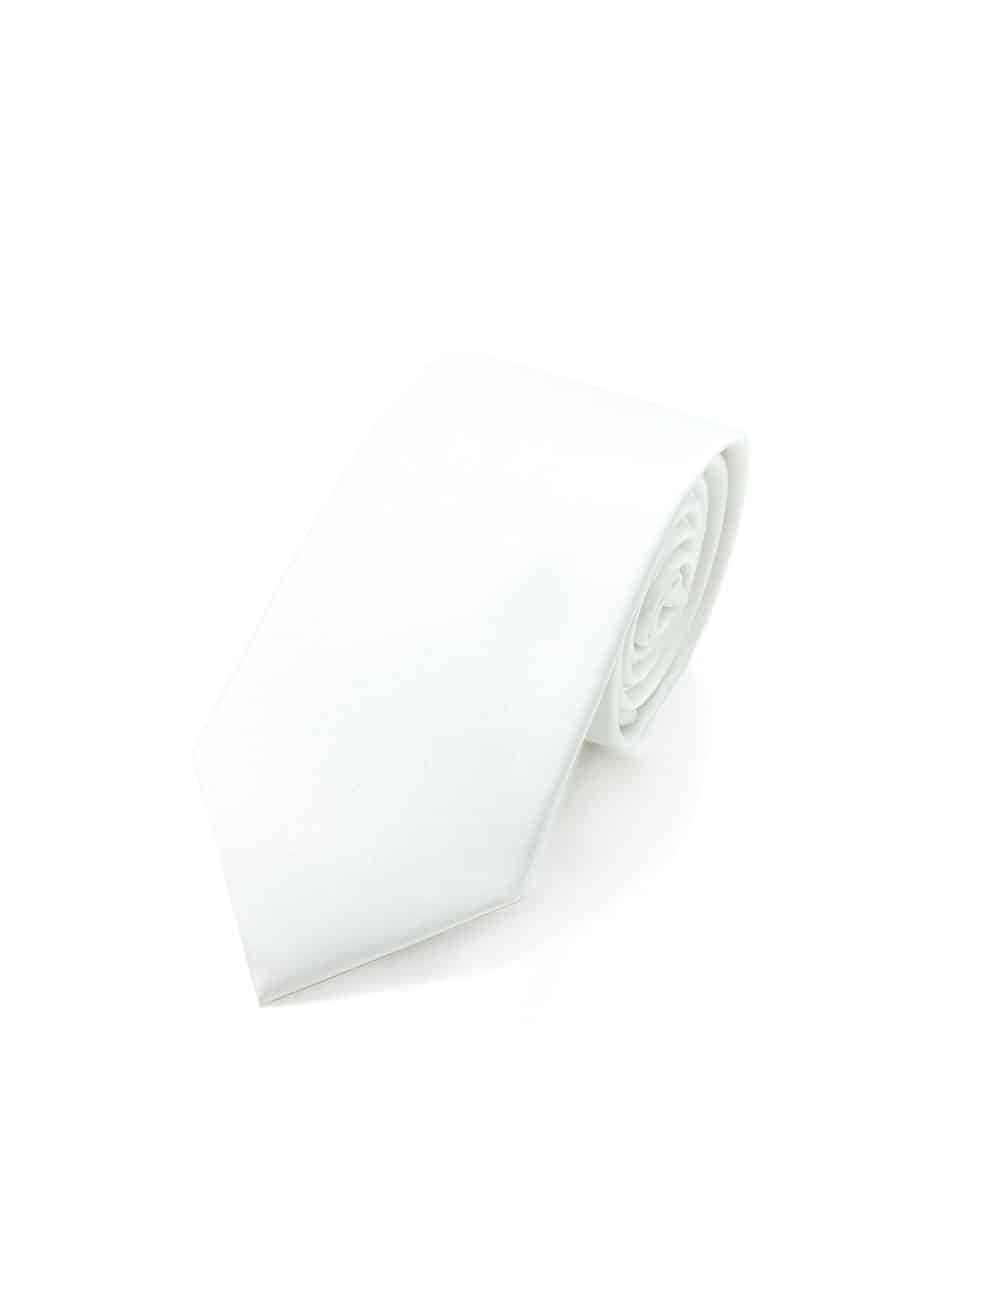 Solid White Spill Resist Woven Necktie NT6.13